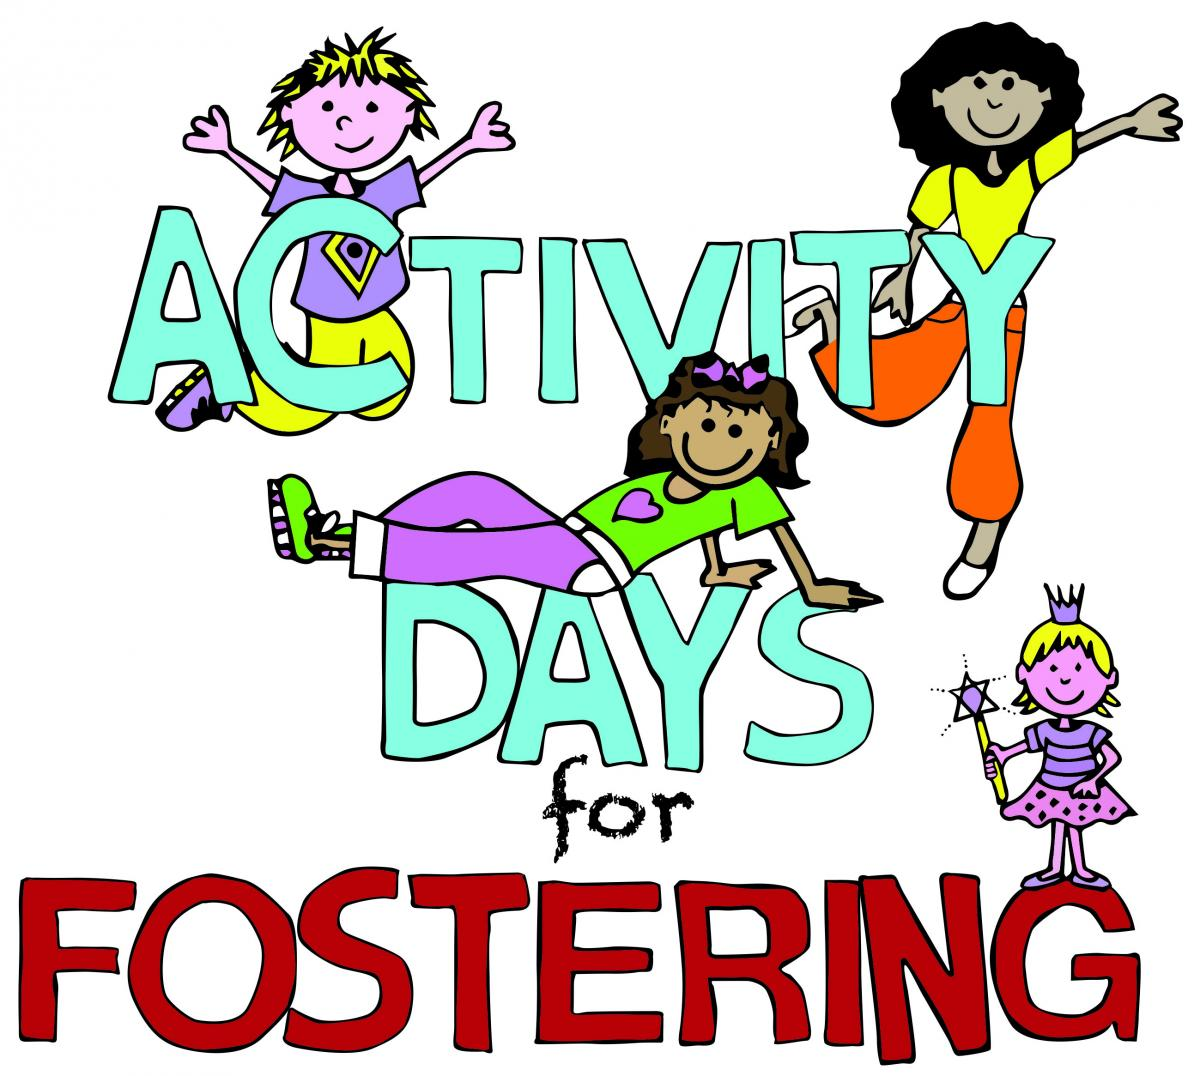 Activity Days for Fostering